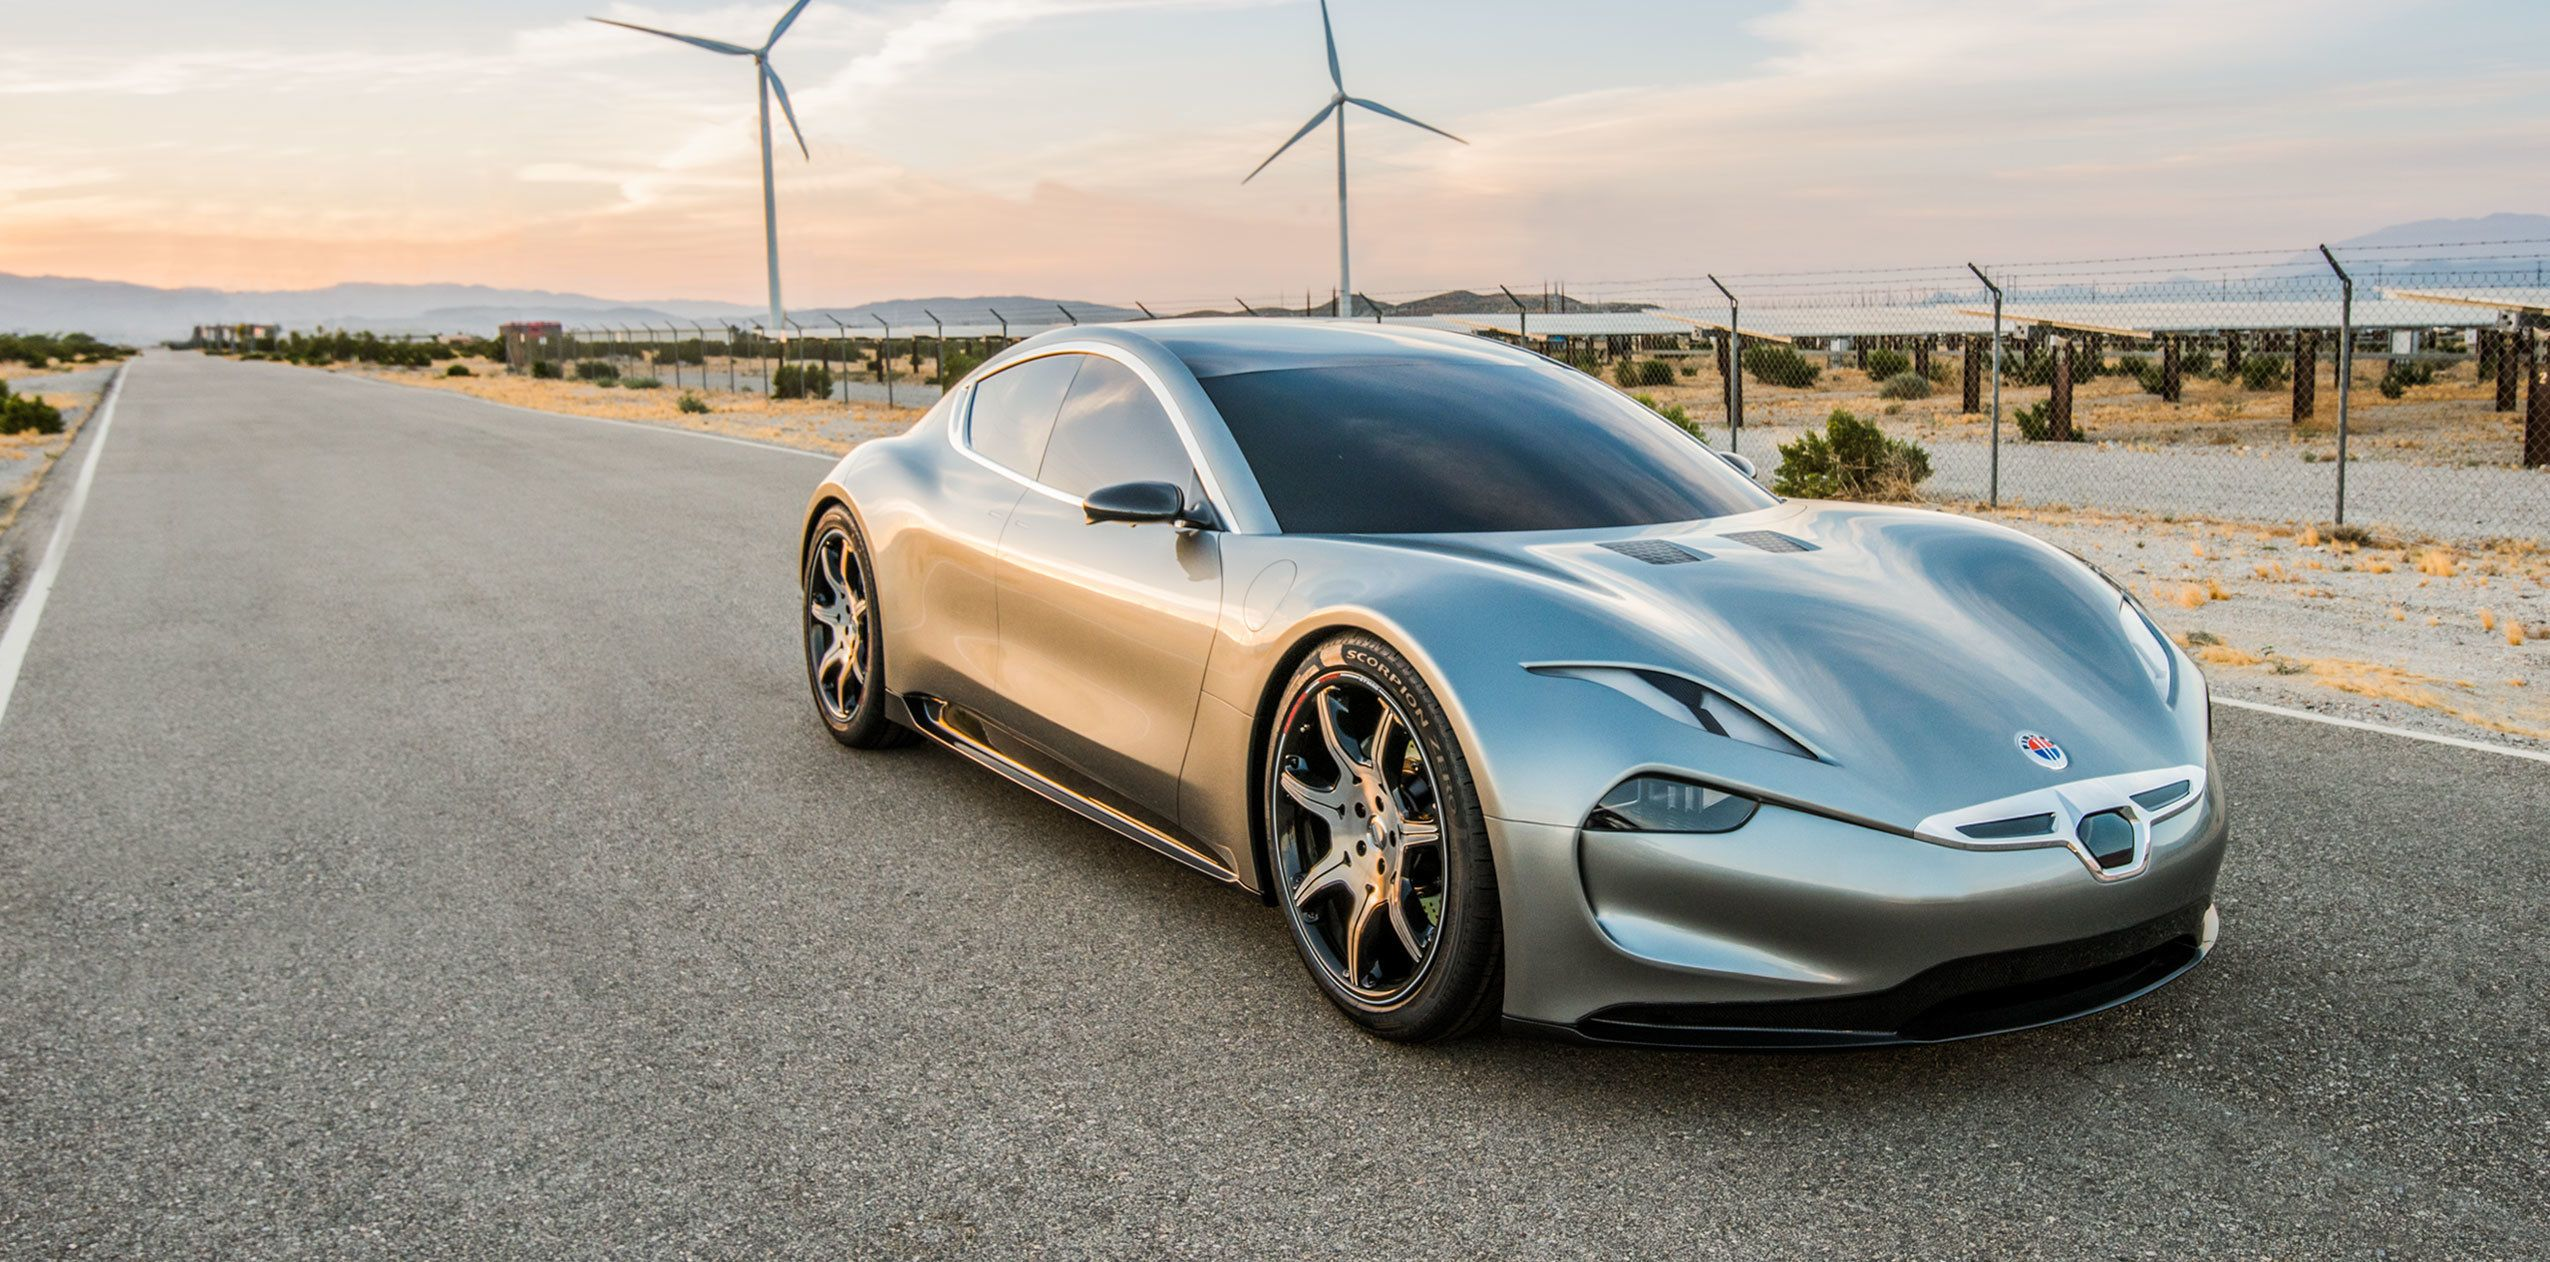 Fisker Claims To Have A Battery That Be Charged In 1 Minute And Has A 500 Mile